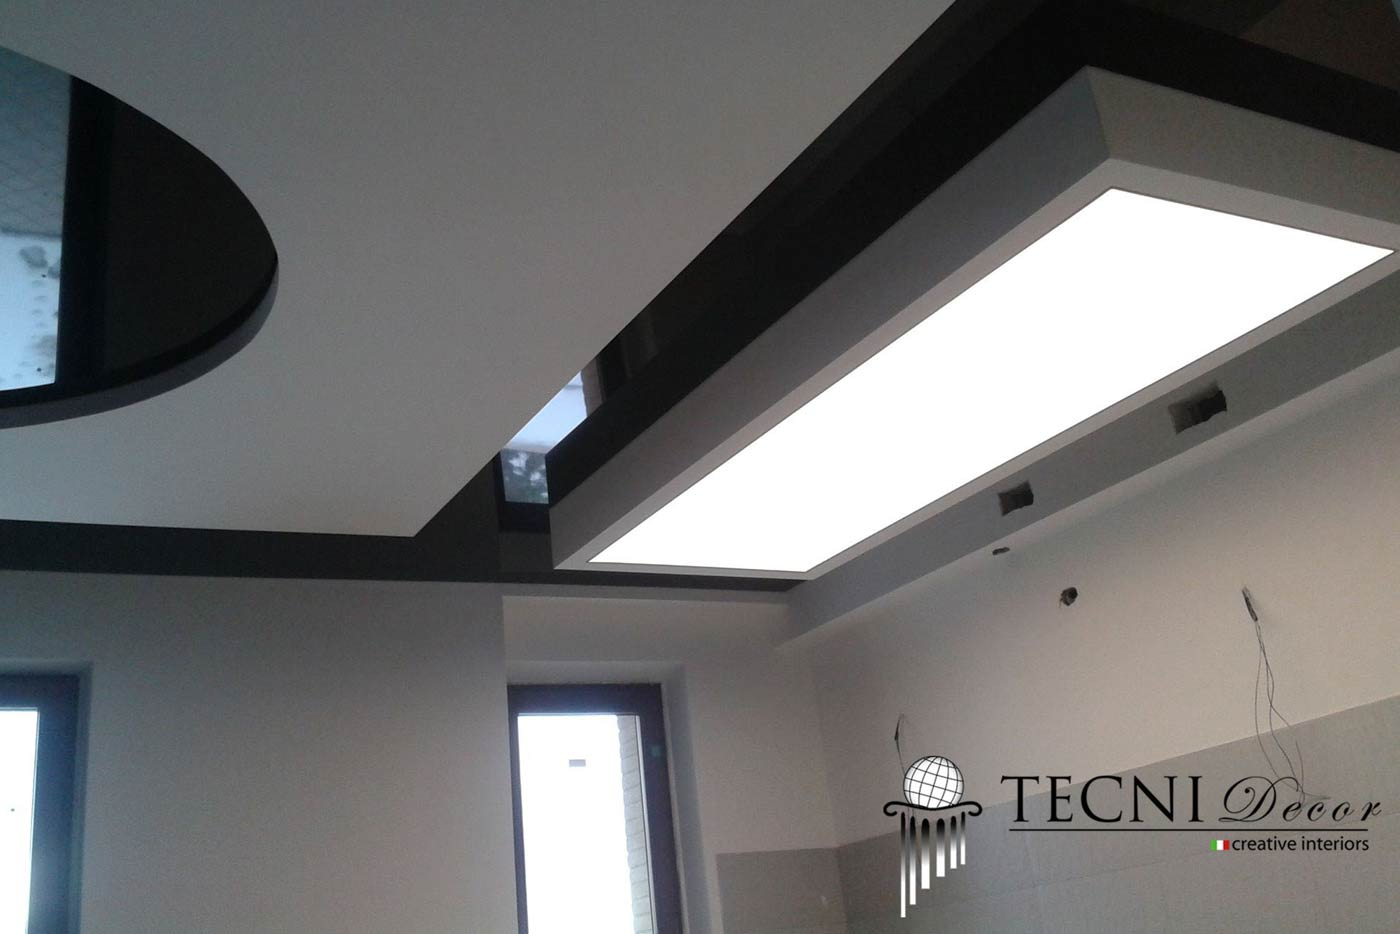 Translucent Lighting Stretch Ceilings Tecnidecor